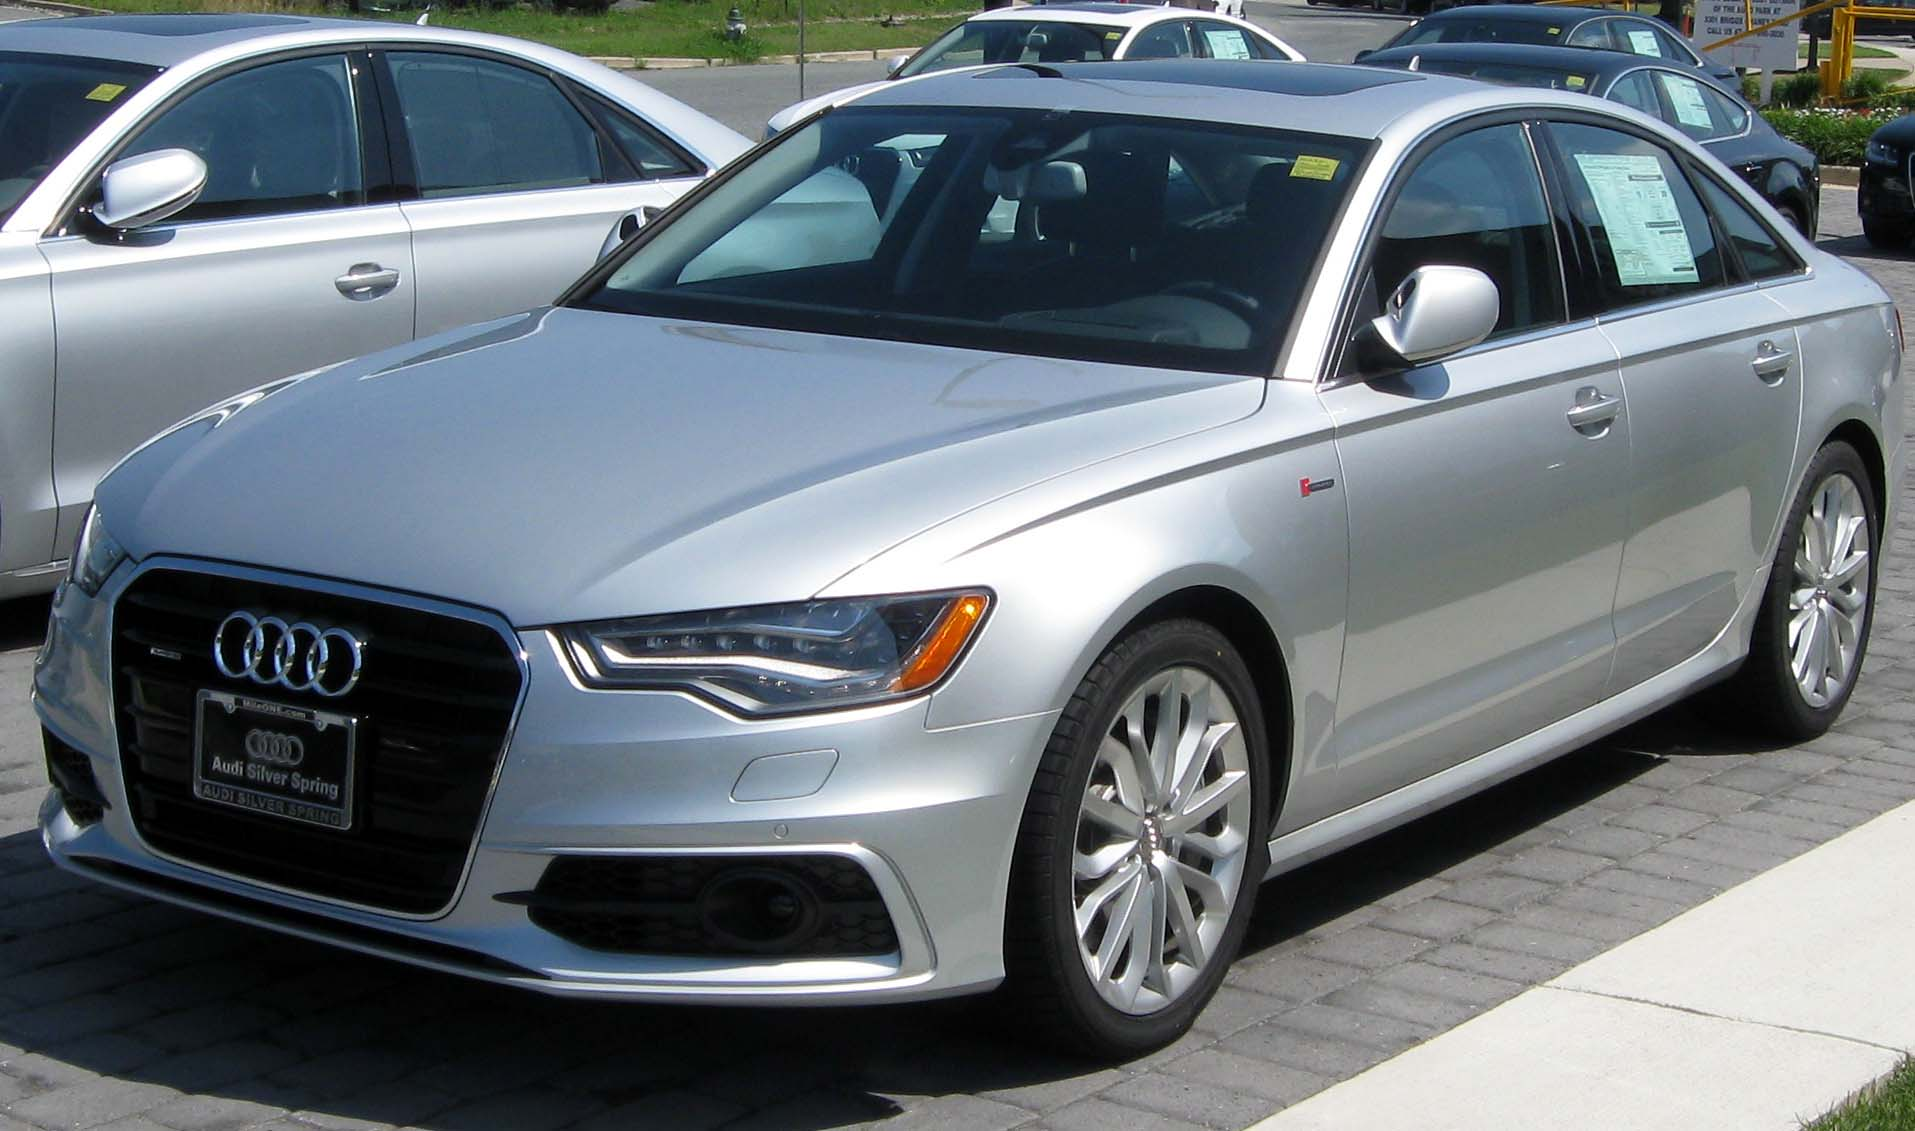 File:2012 Audi A6 -- 07-07-2011 1.jpg - Wikimedia Commons